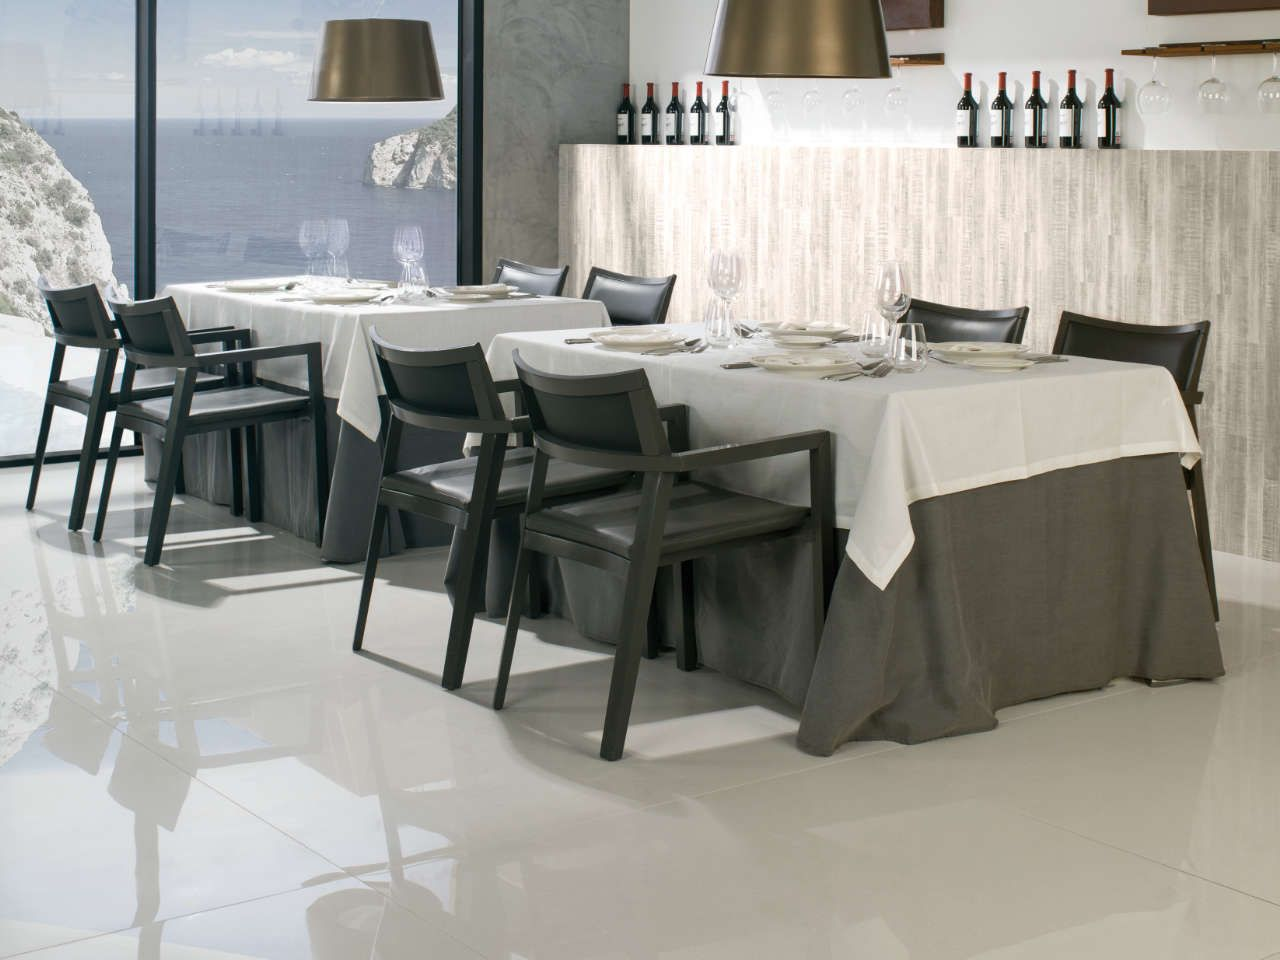 Stuc white polished 119x119 cm flooring pinterest white polish urbatek through body technical porcelain tiles that have less than absorption colour throughout its mass and are fully glazed doublecrazyfo Choice Image